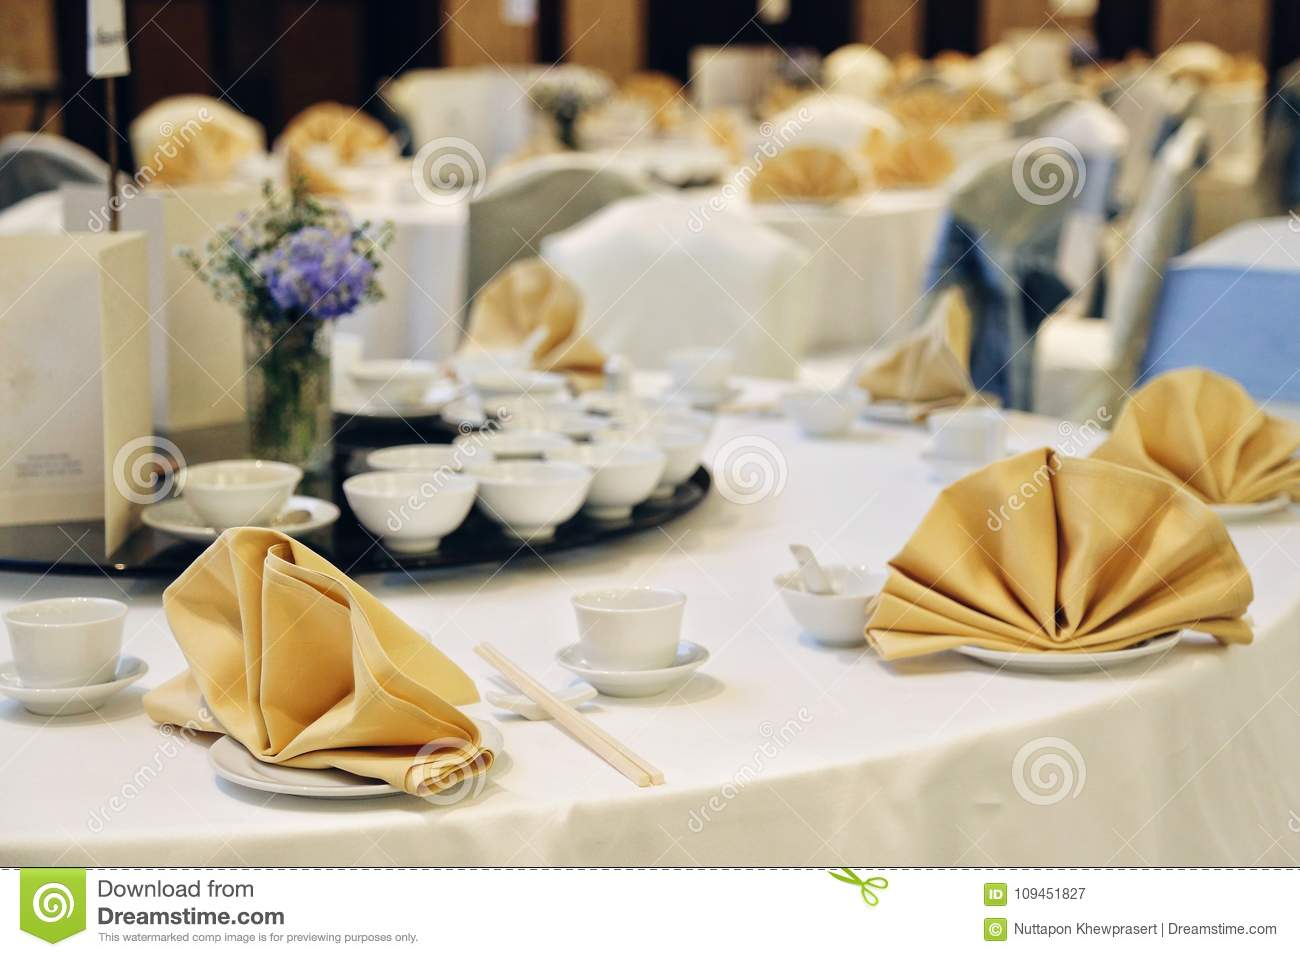 Chinese Banquet Party Decor White Table With Gold Napkin Stock Image Image Of Bowl Celebration 109451827